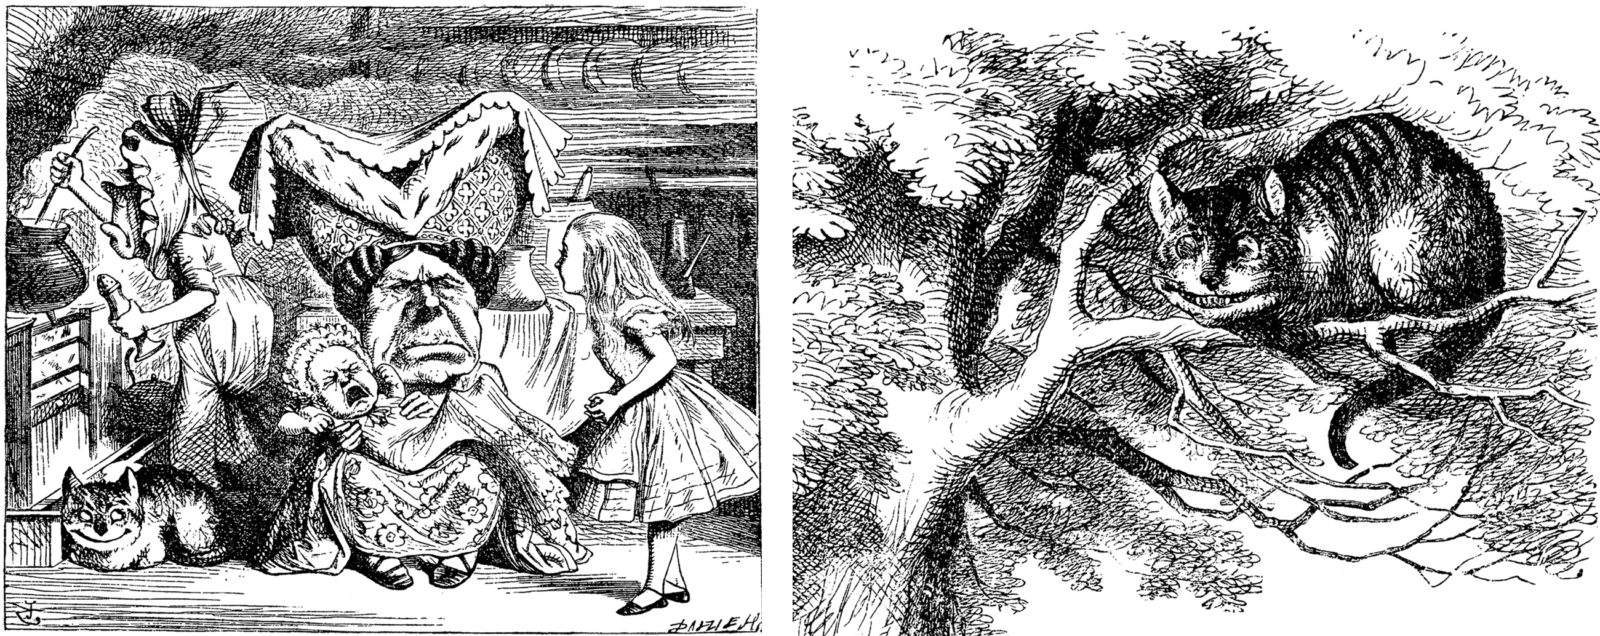 Five Things Everyone Should Know About the Victorians: Left: Sir John Tenniel, Cook, Duchess, Cheshire Cat, Baby, and Alice, wood engraving. Right: Sir John Tenniel, detail from Alice speaks to the Cheshire Cat, wood engraving. Both images are from the 1865 version of Lewis Carroll's Alice's Adventures in Wonderland.